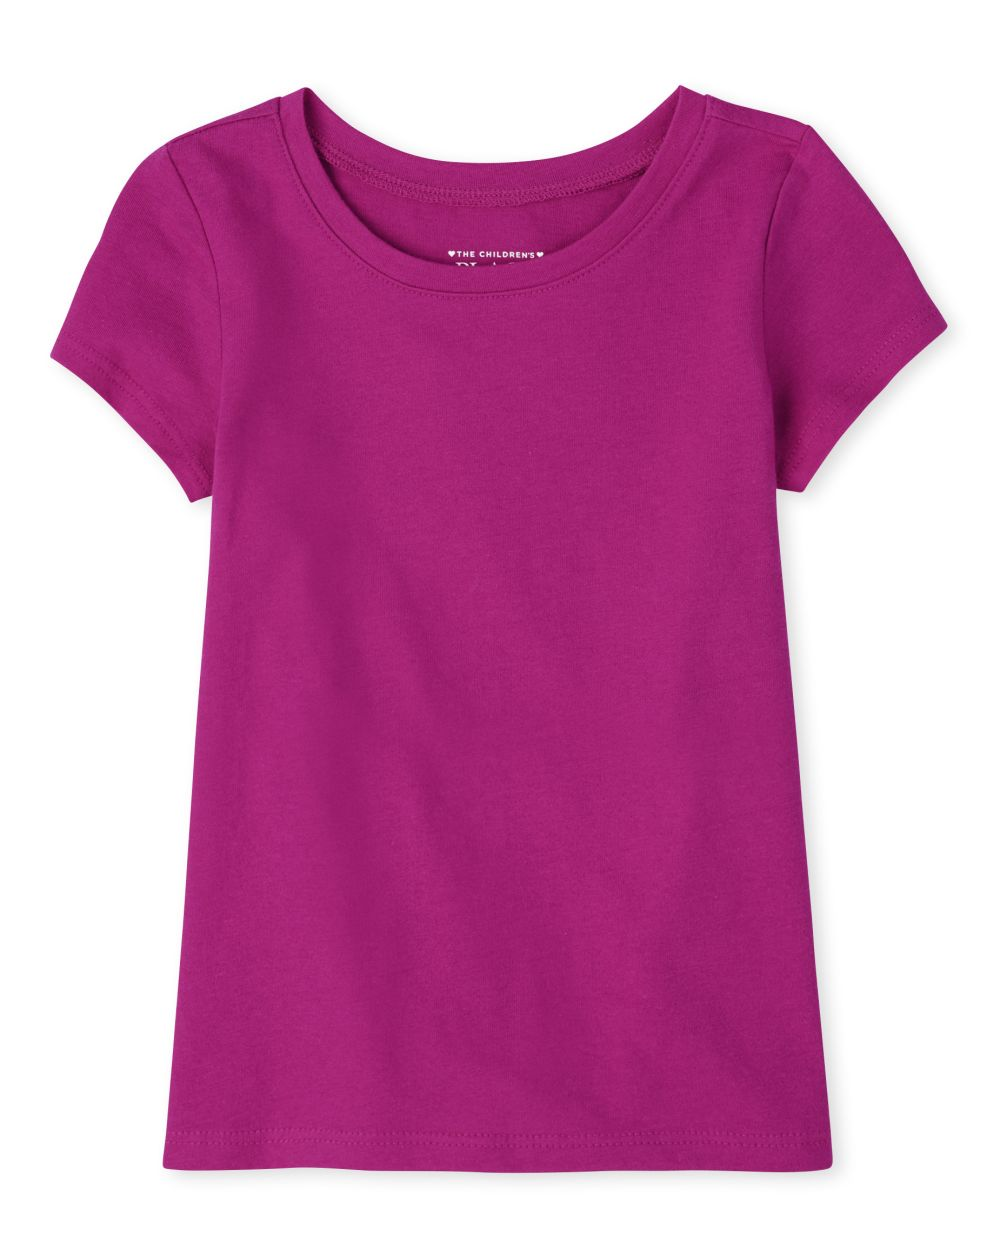 Baby And Toddler Girls Uniform Basic Layering Tee